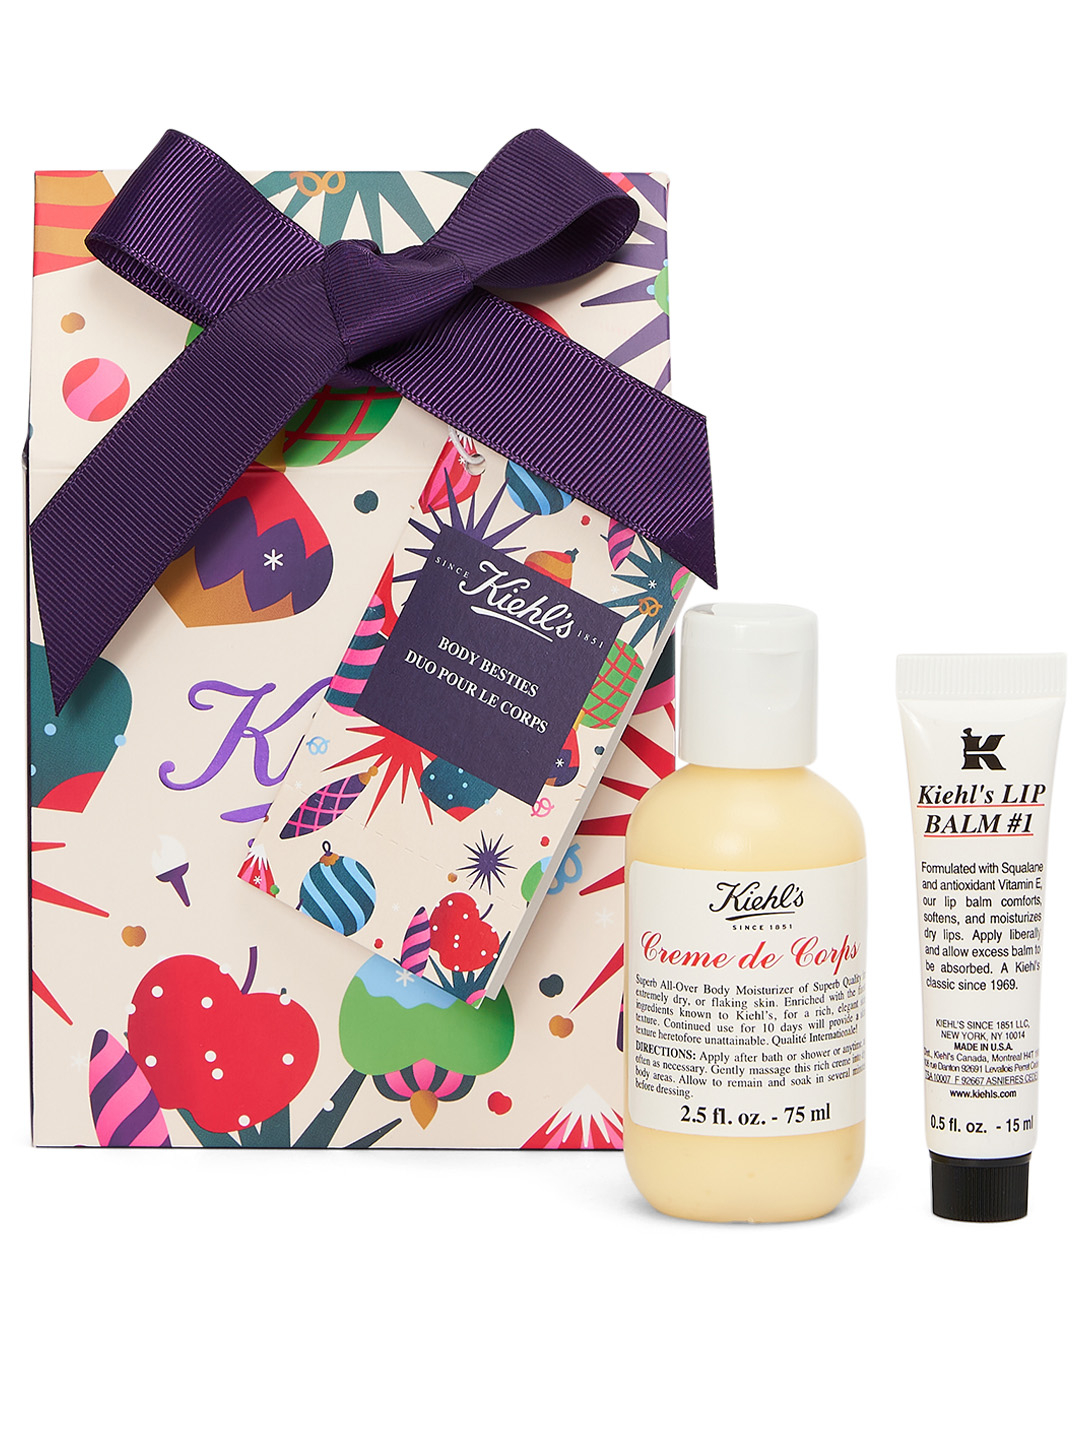 KIEHL'S Body Besties Gift Set - Holiday Edition Beauty